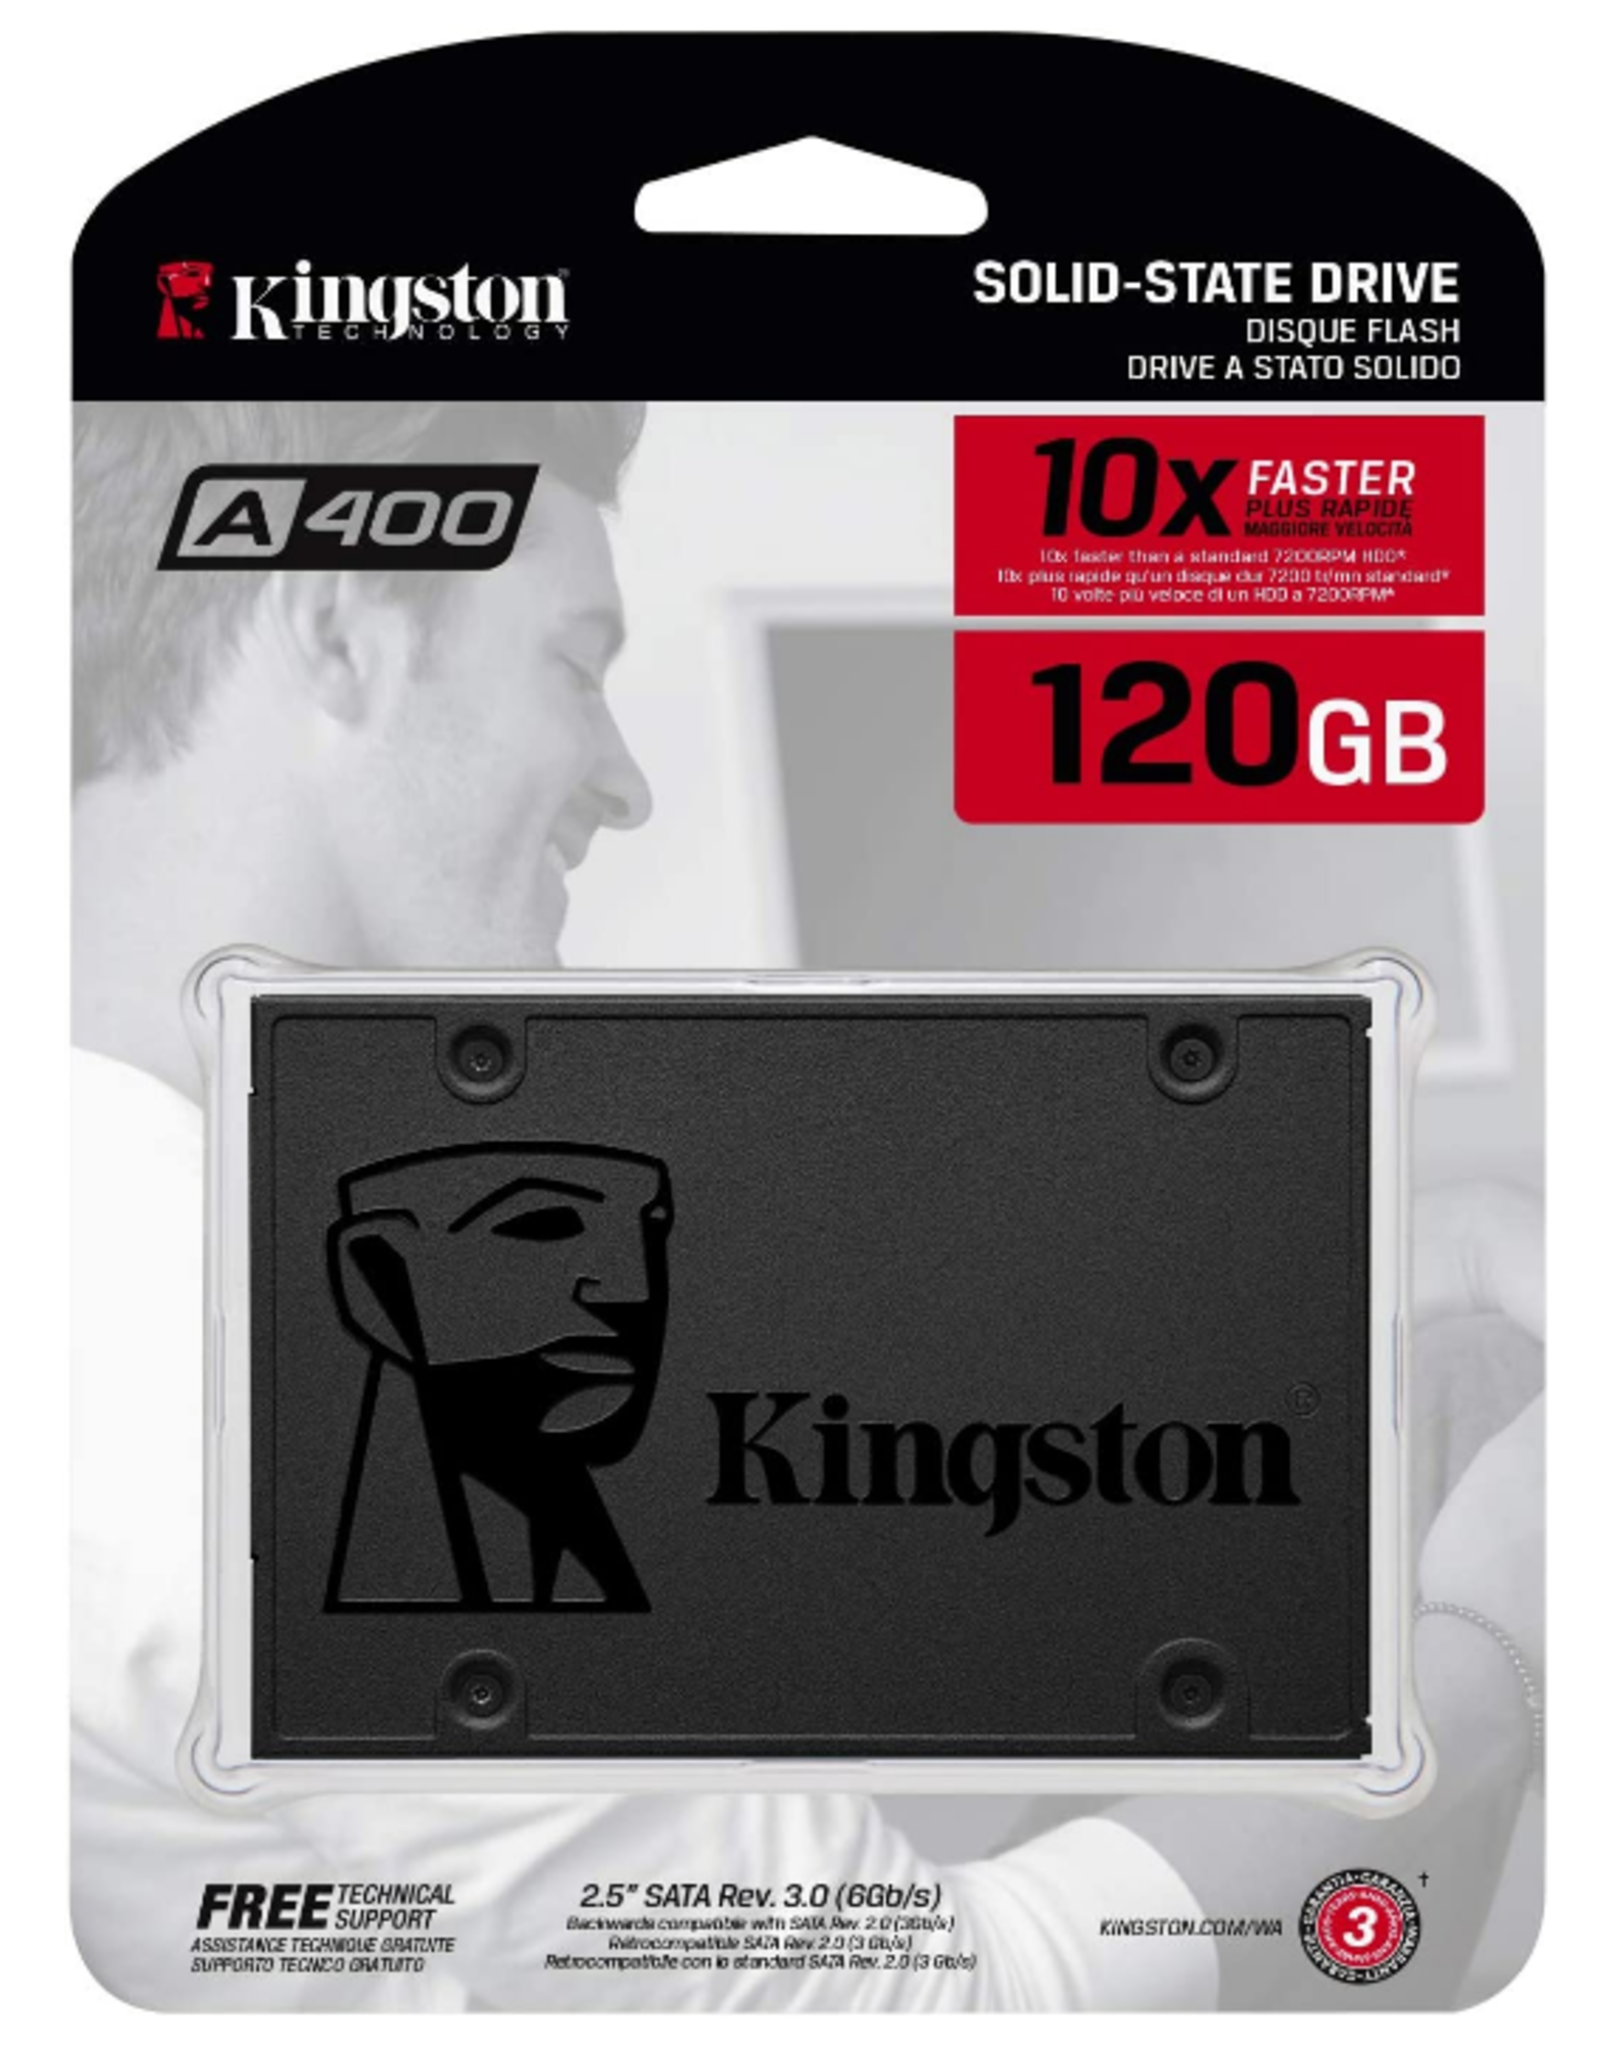 Kingston Kingston A400 120GB Solid State Drive